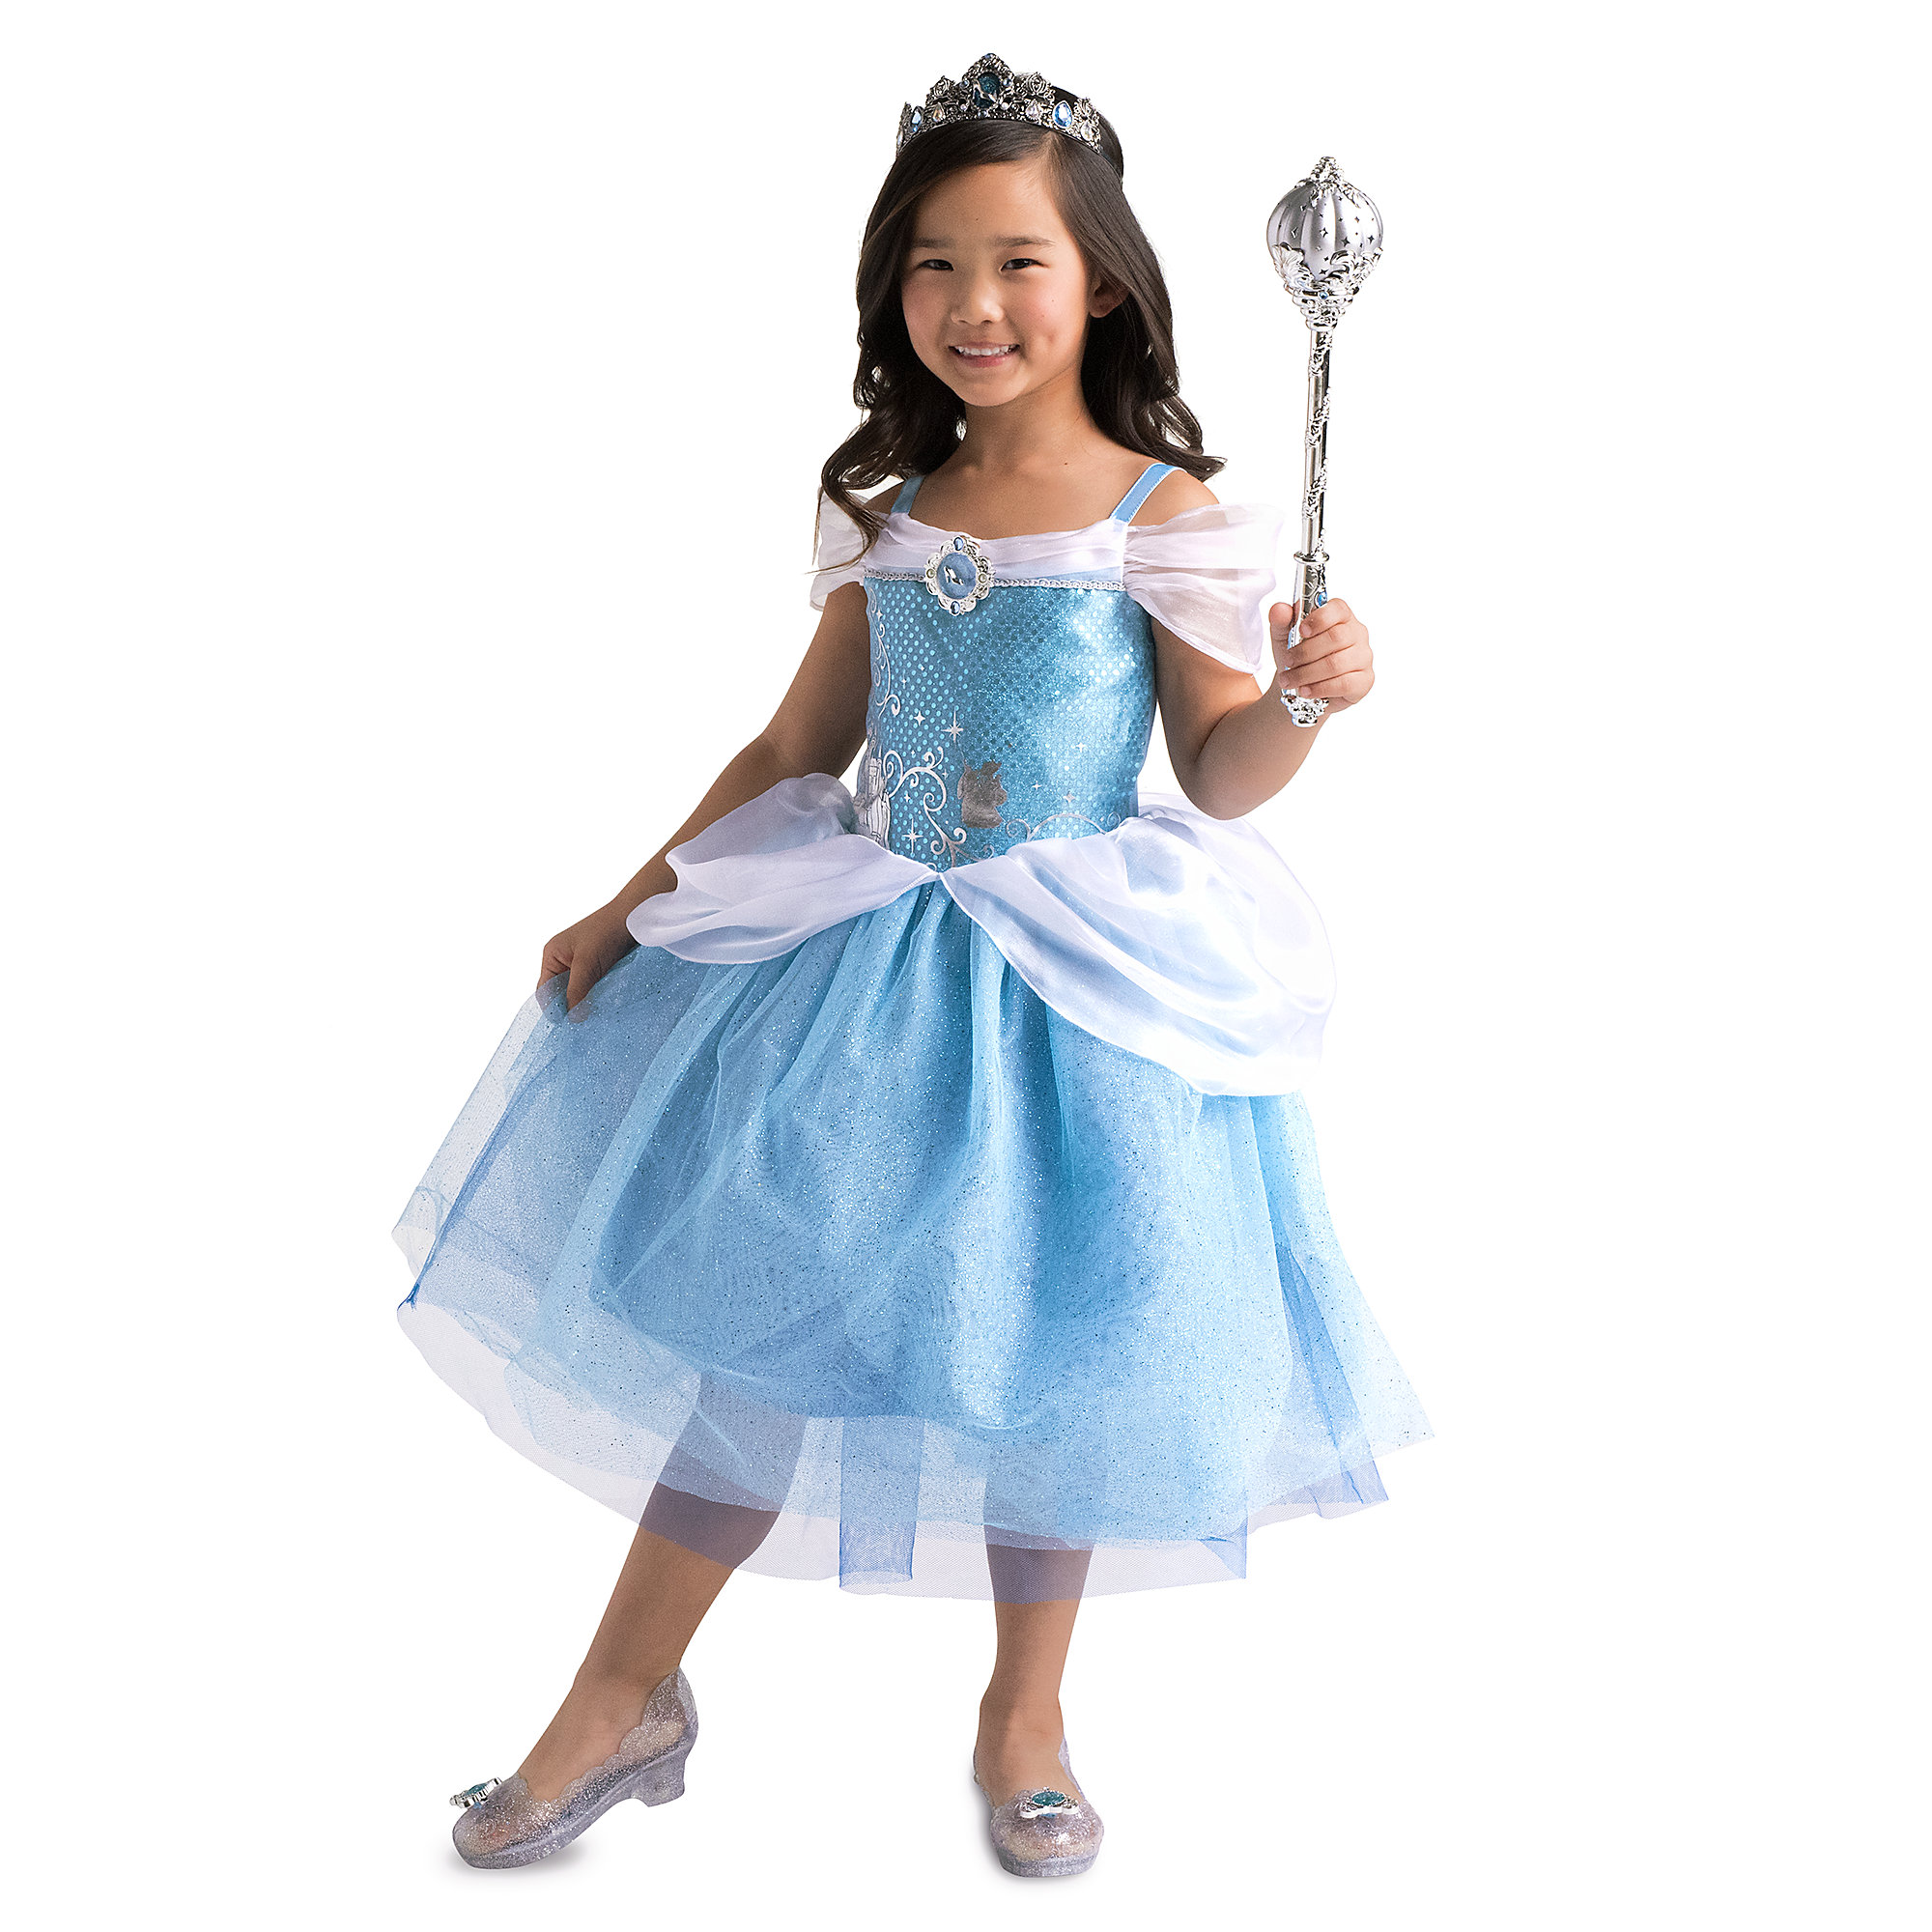 Thumbnail Image of Cinderella Costume for Kids # 2  sc 1 st  shopDisney & Cinderella Costume for Kids   shopDisney